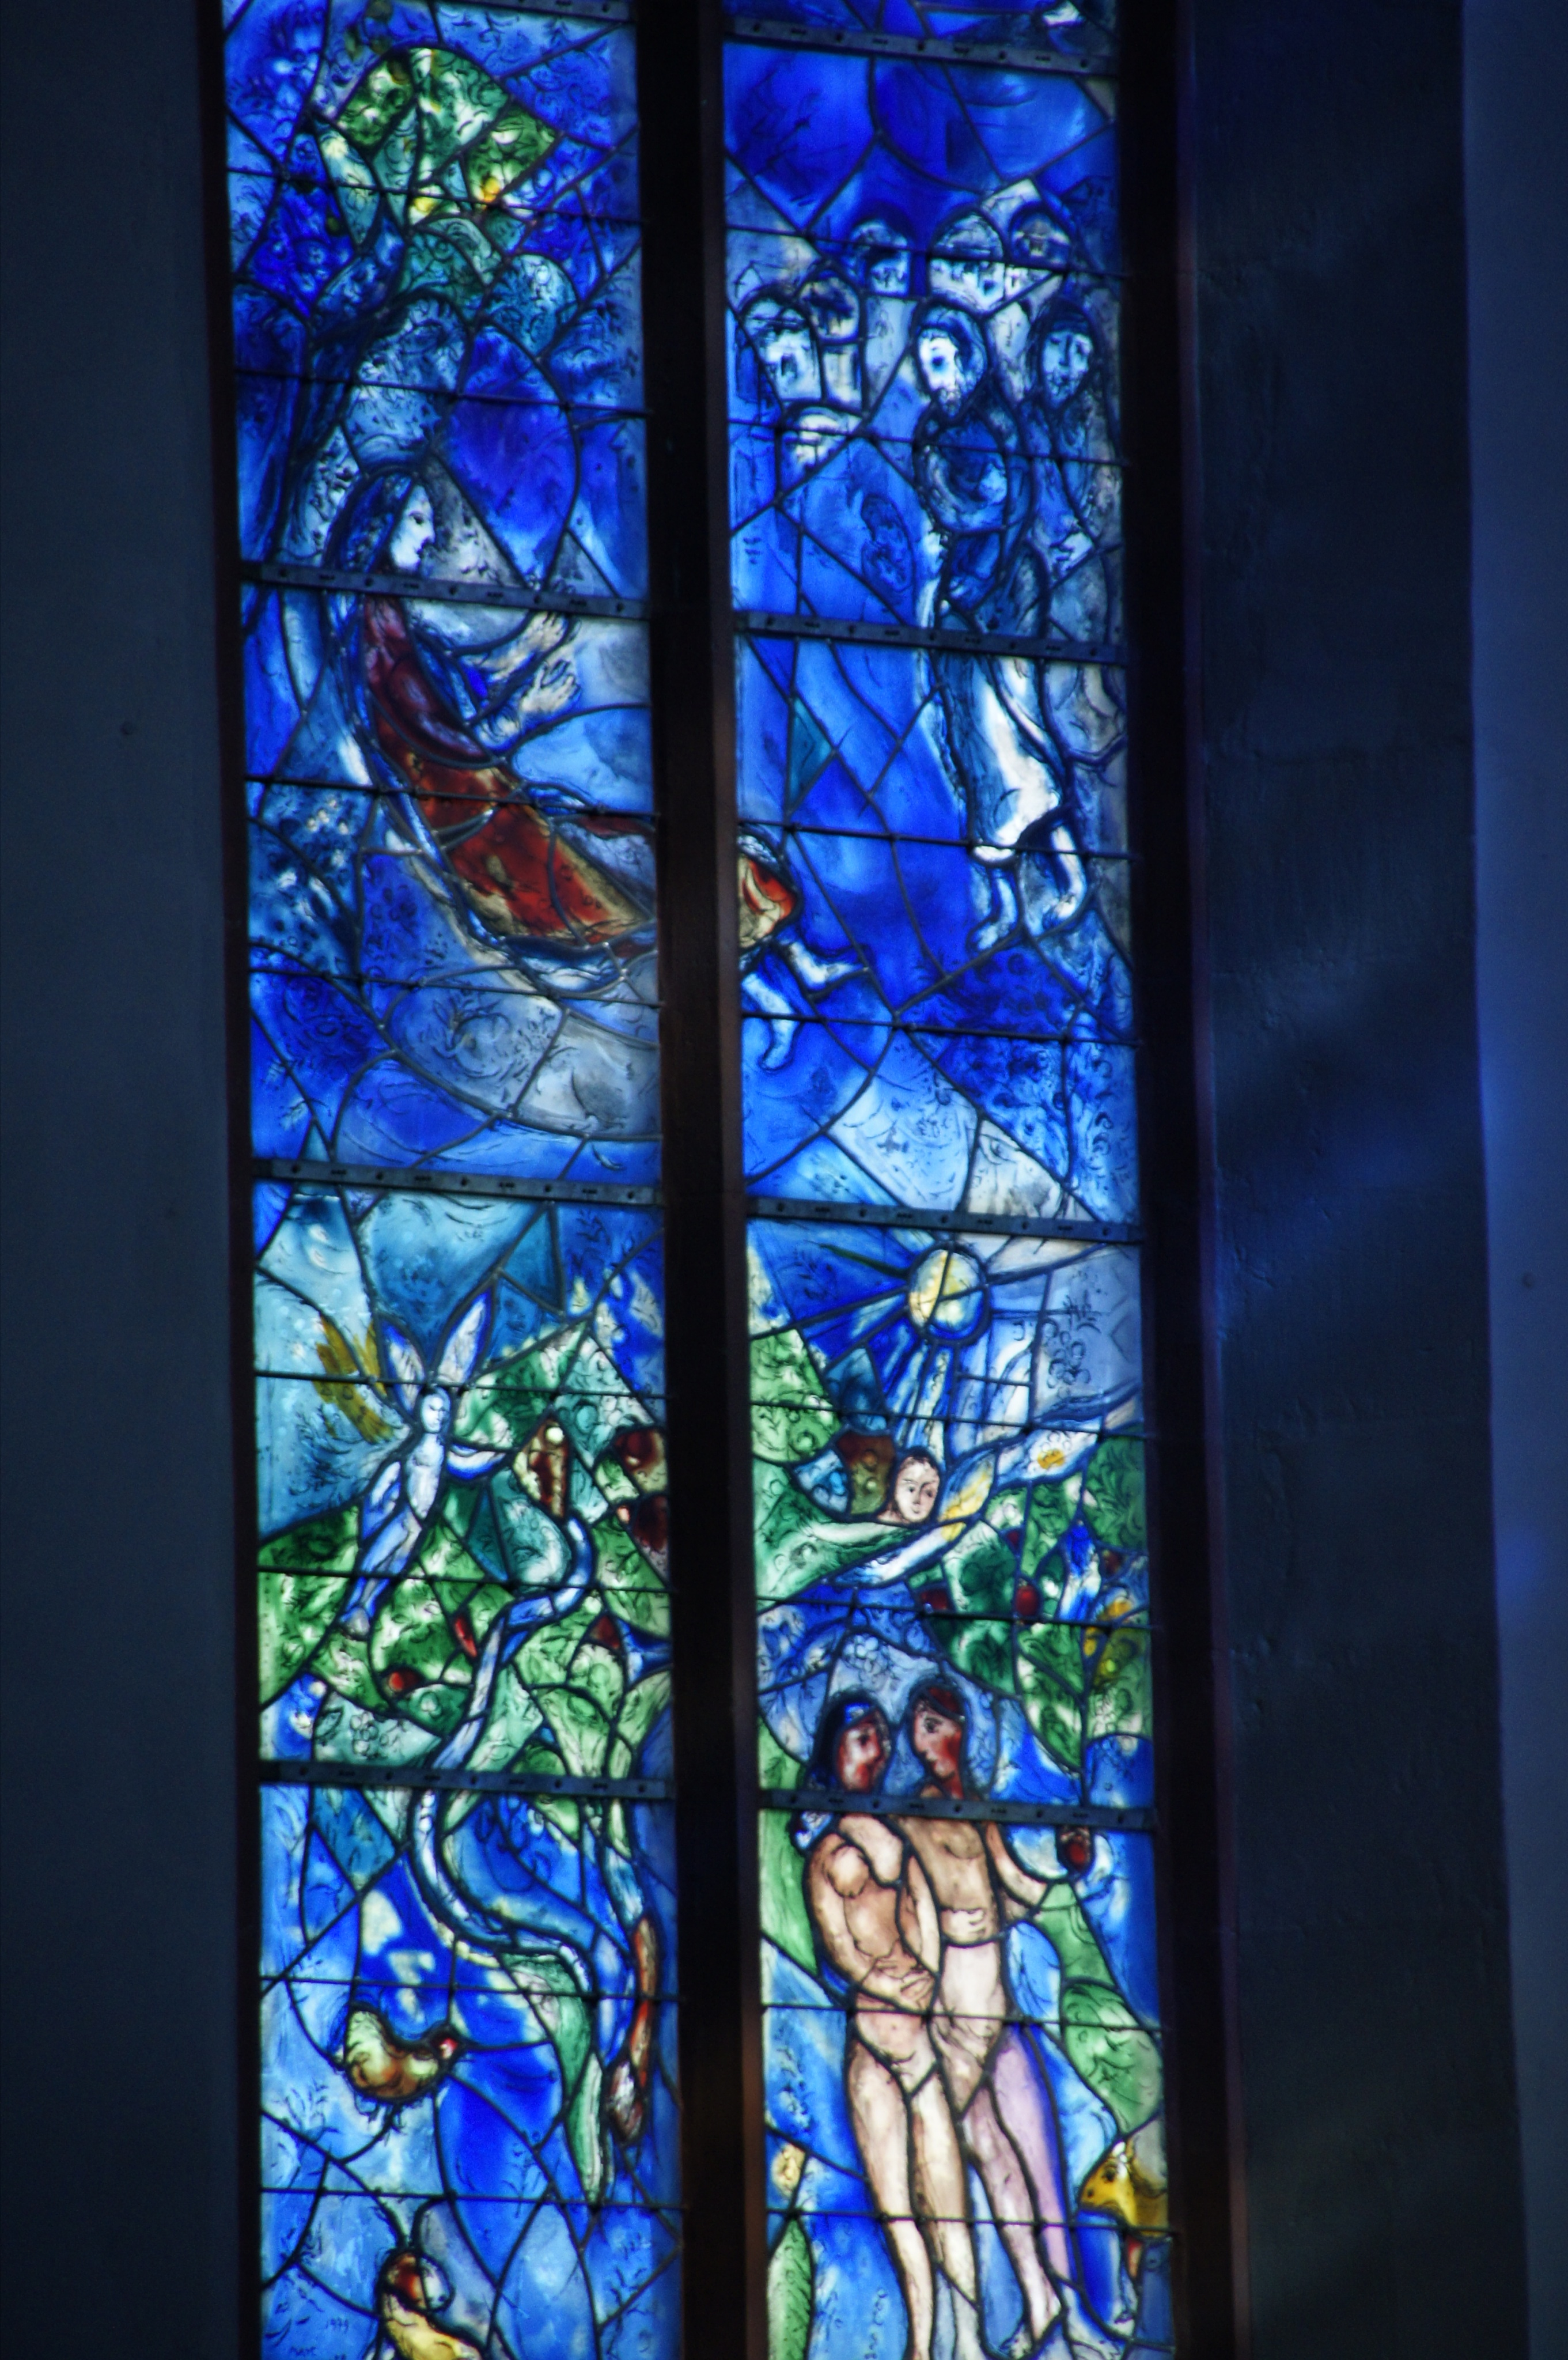 'Vredesraam' door Marc Chagall in de Sint-Stefanuskerk in Mainz. © Polybert49, Flickr CC